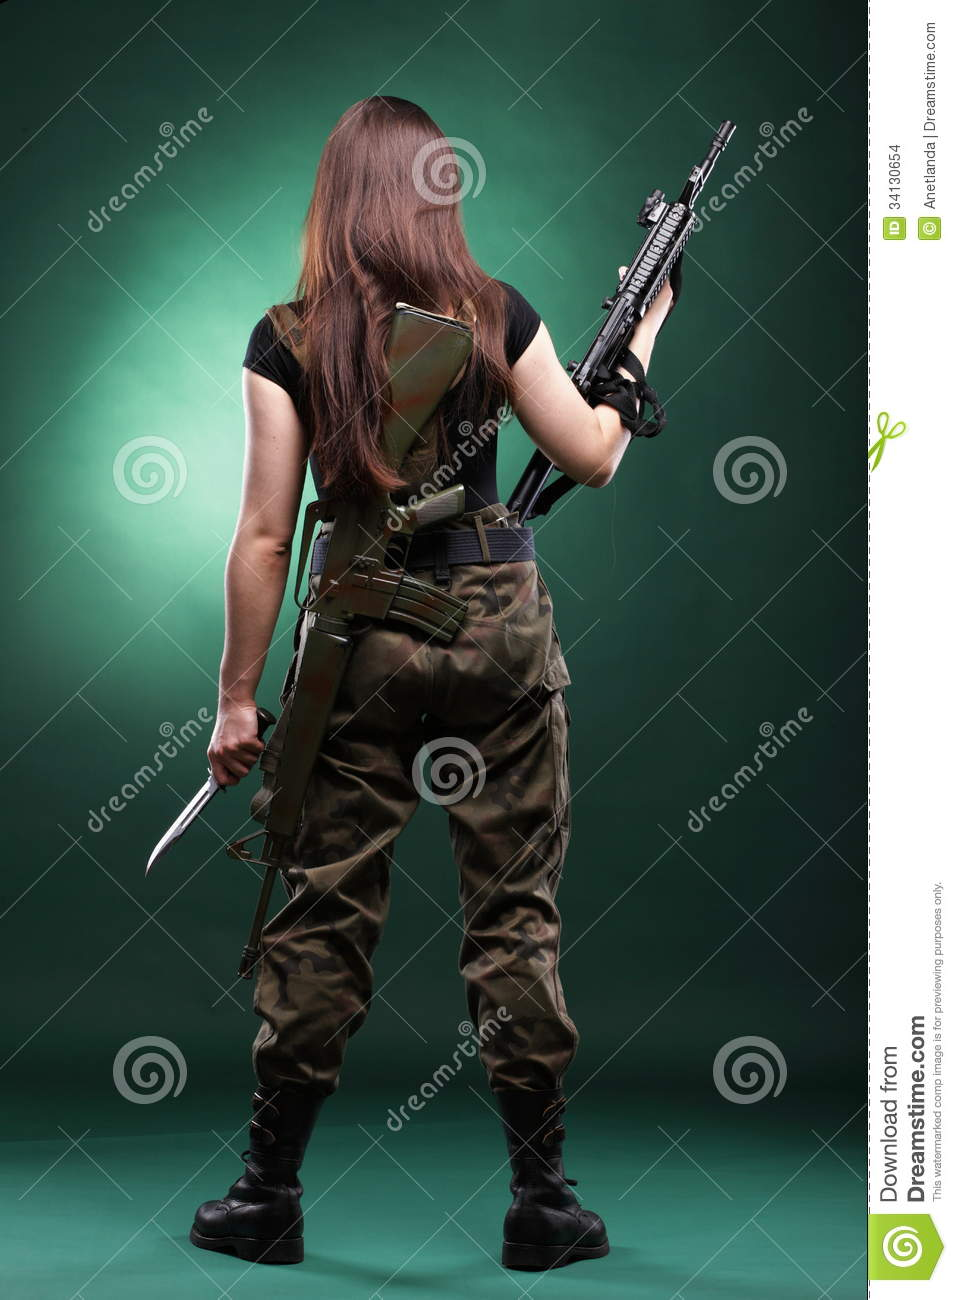 Military naked army girl holding a gun